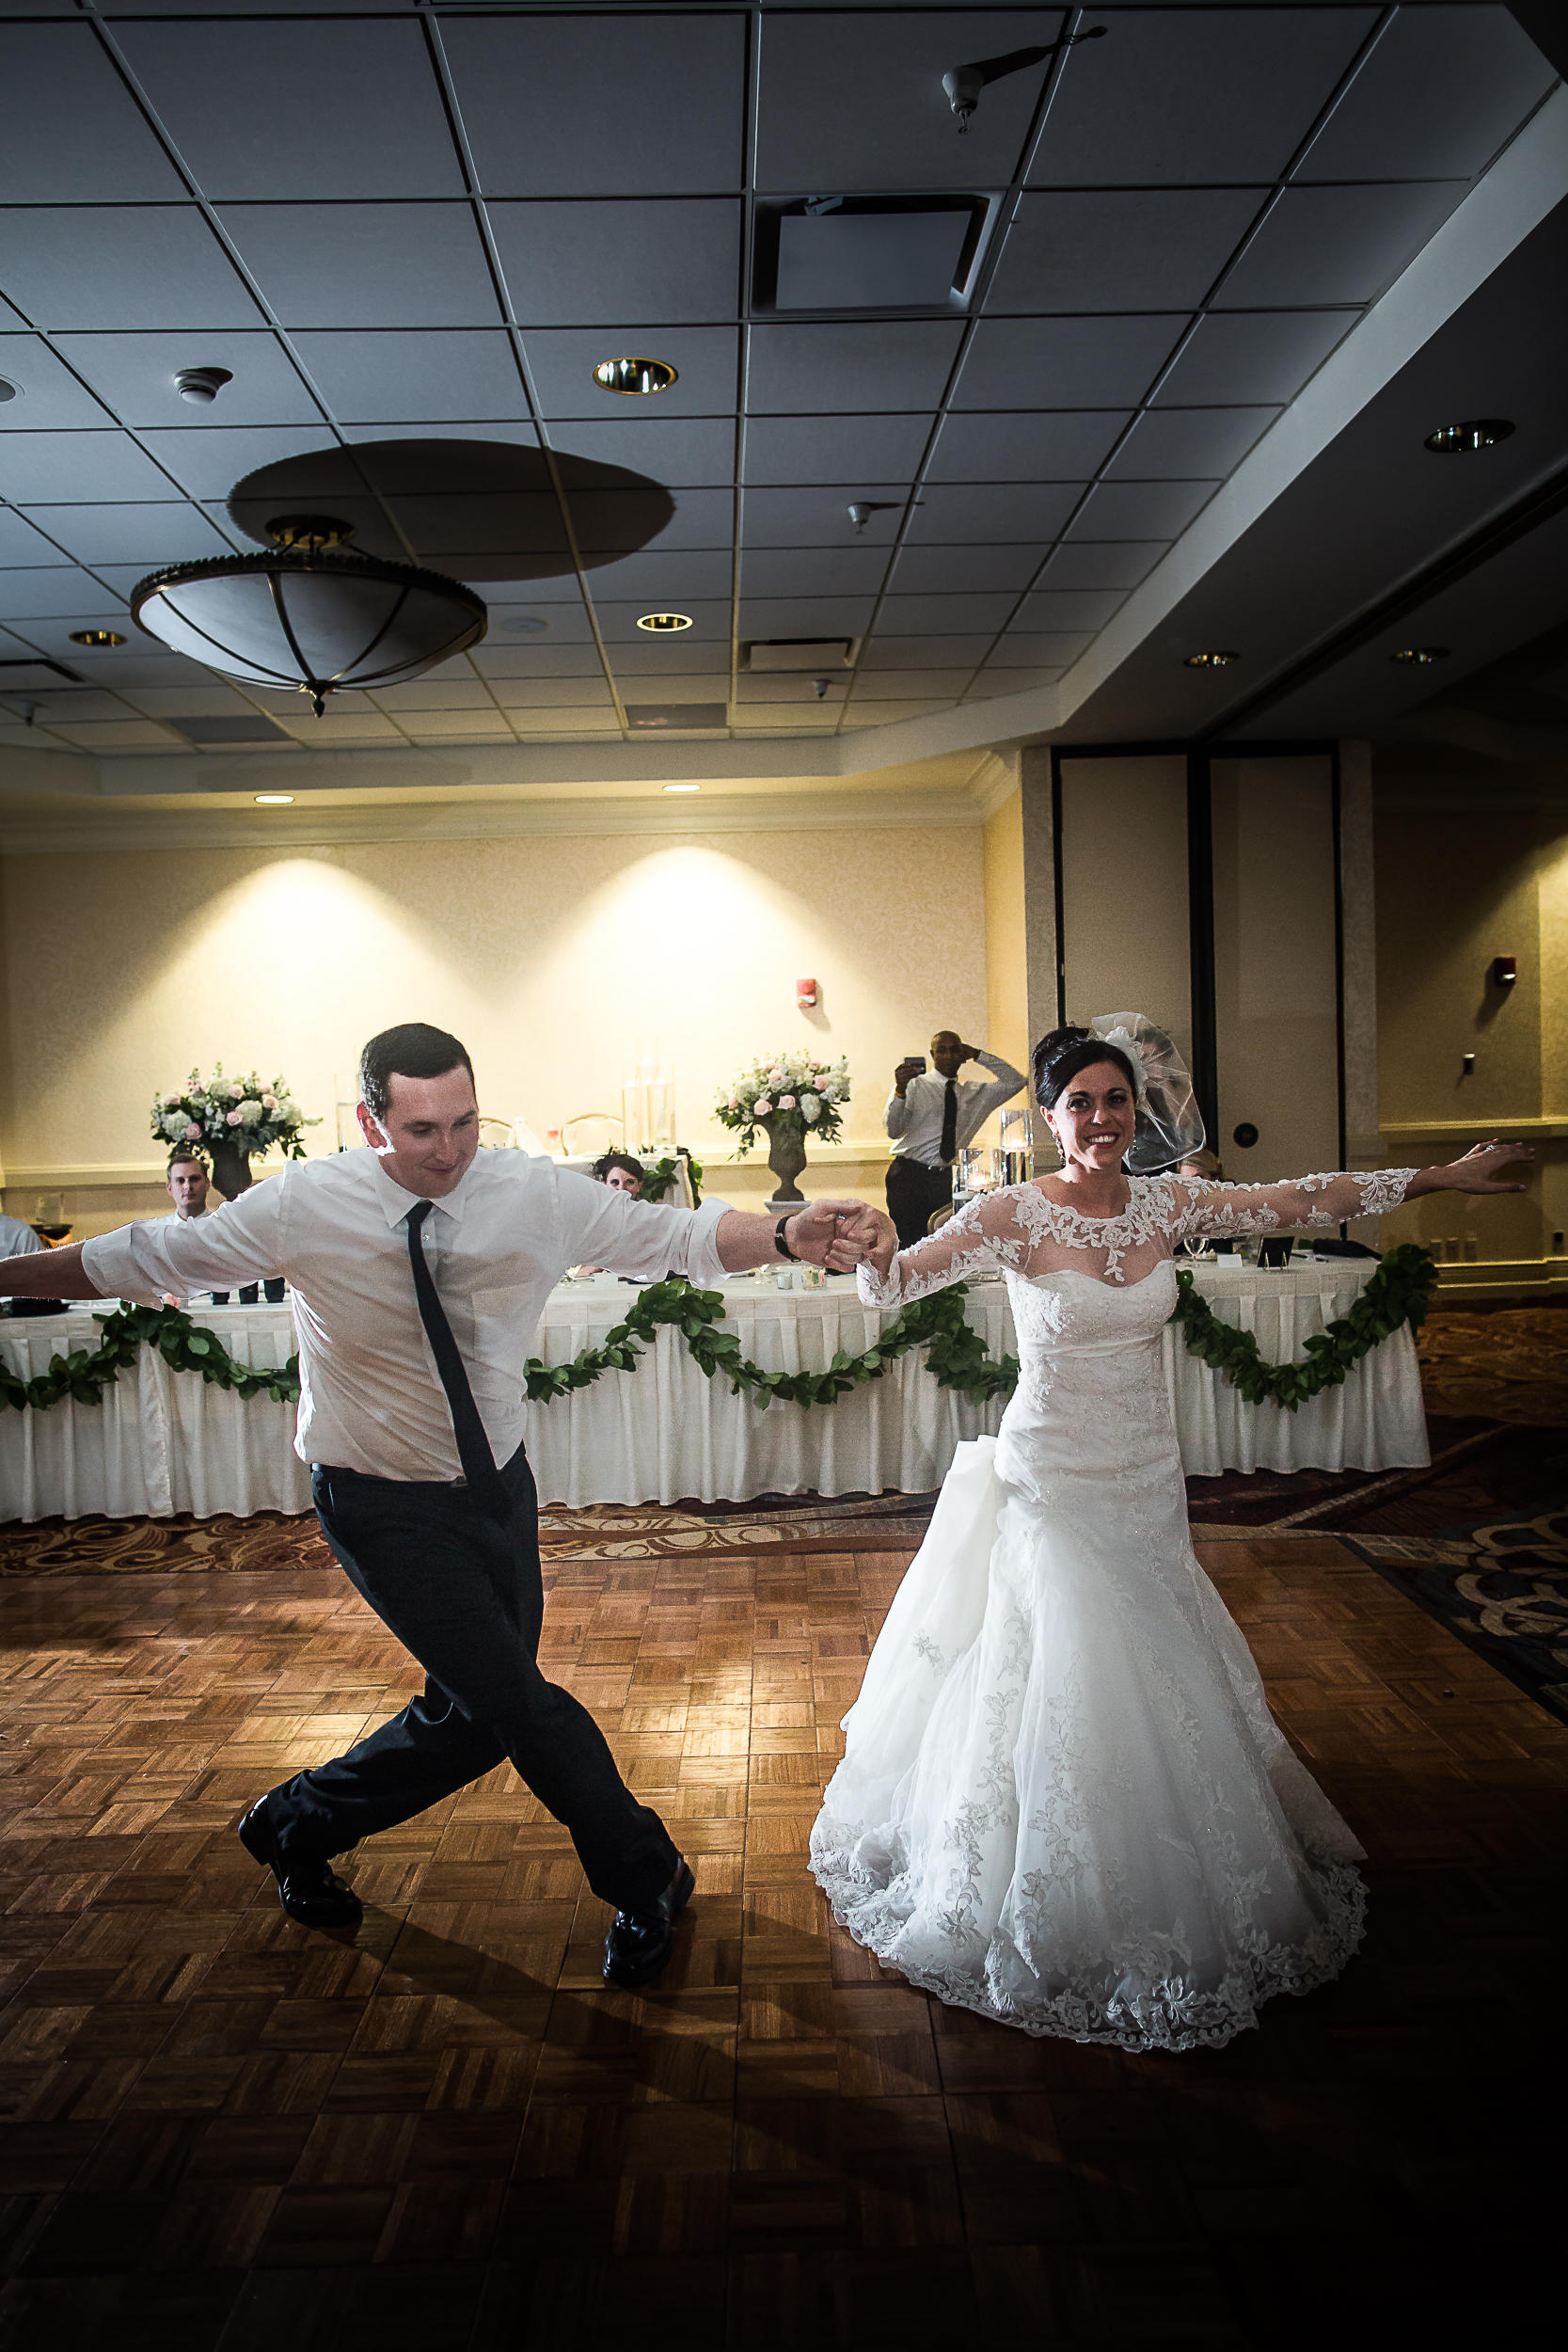 lorrina&Jacob-2539.jpg